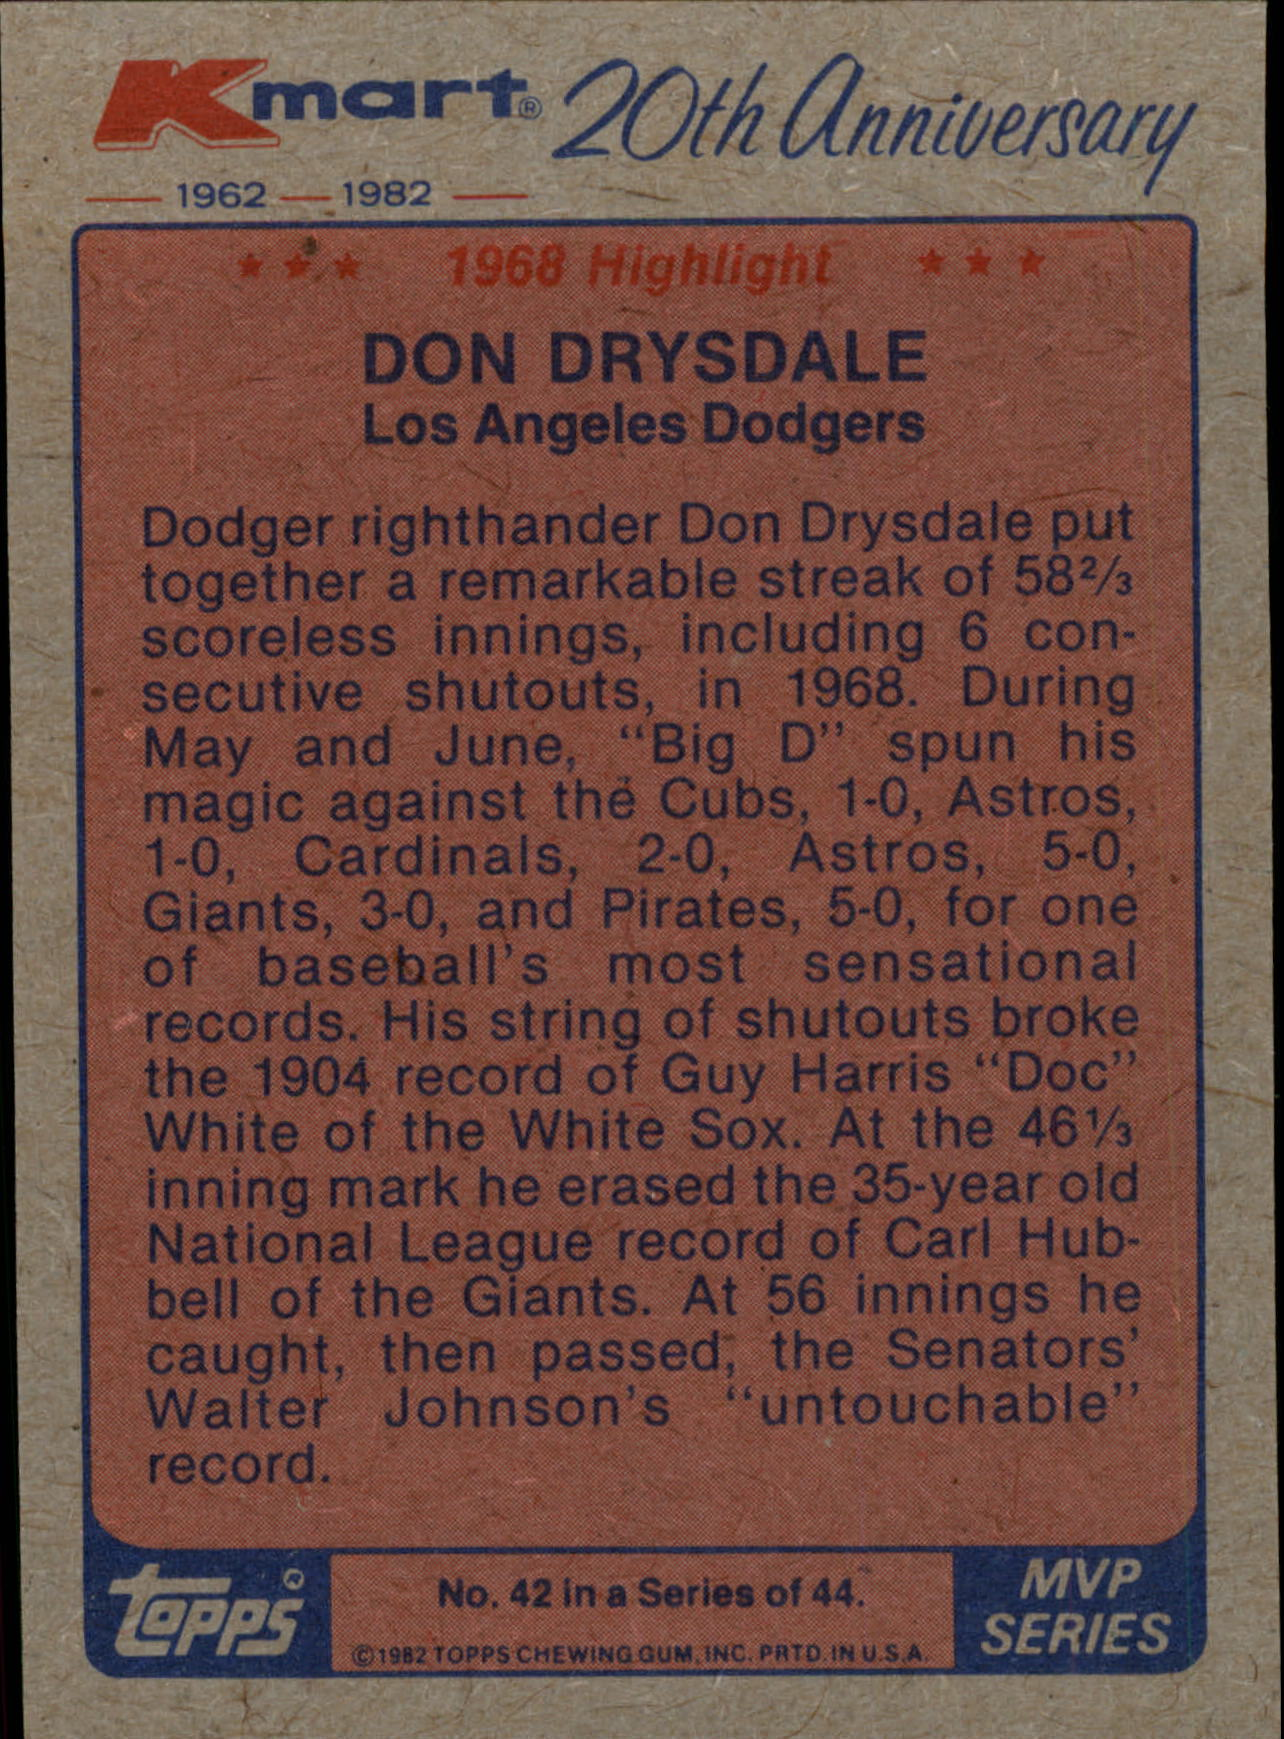 1982 K-Mart #42 Don Drysdale '68 HL/(Scoreless innings) back image